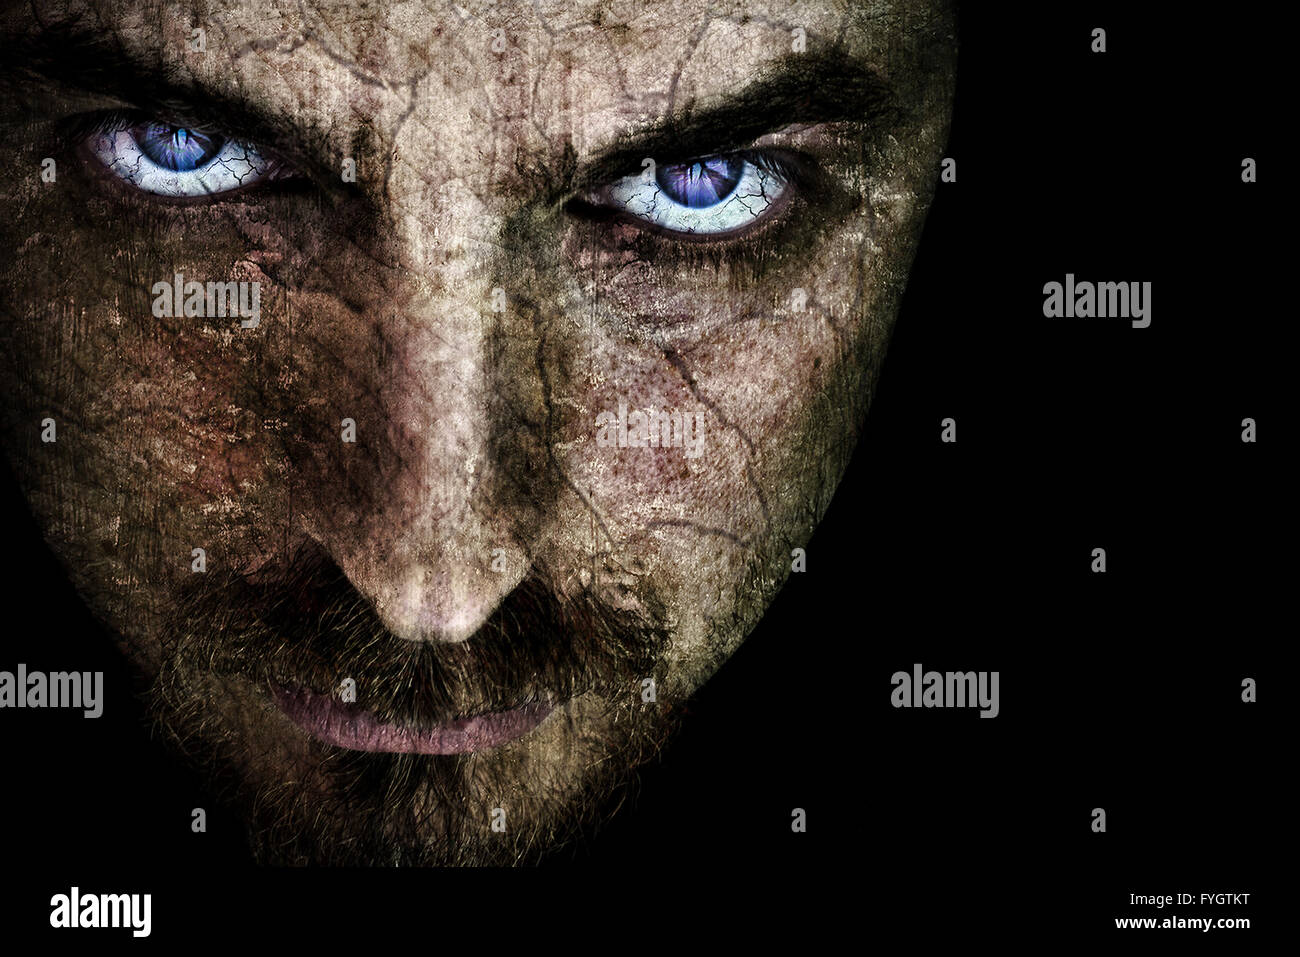 Evil Scary Face with Spooky Eyes Stock Photo